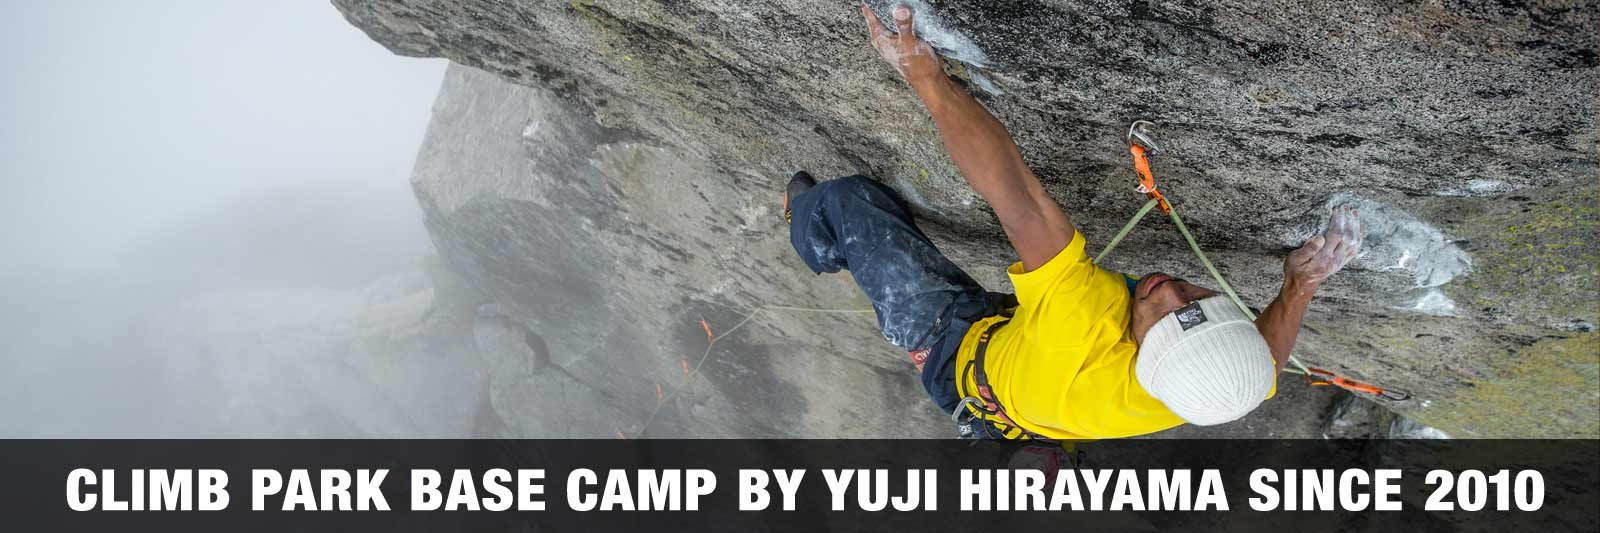 CLIMB PARK BASE CAMP BY YUJI HIRAYAMA SINCE 2010